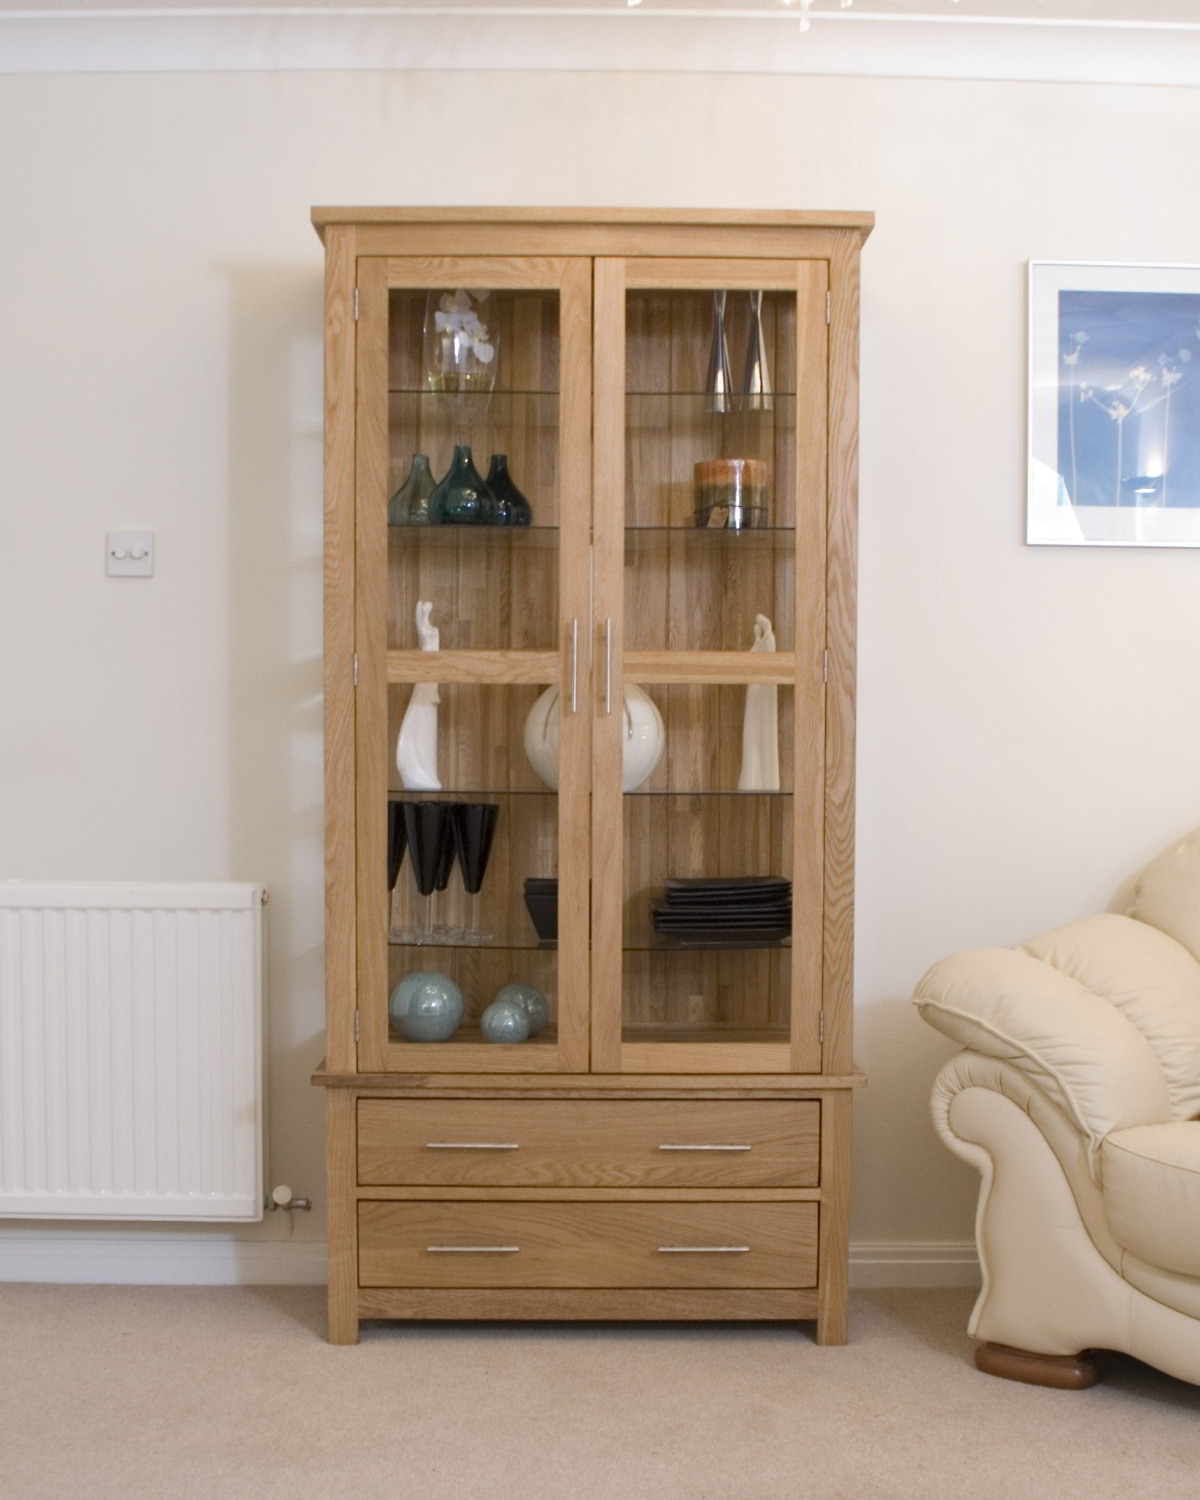 Eton solid oak living room furniture glazed display for Cupboard cabinet